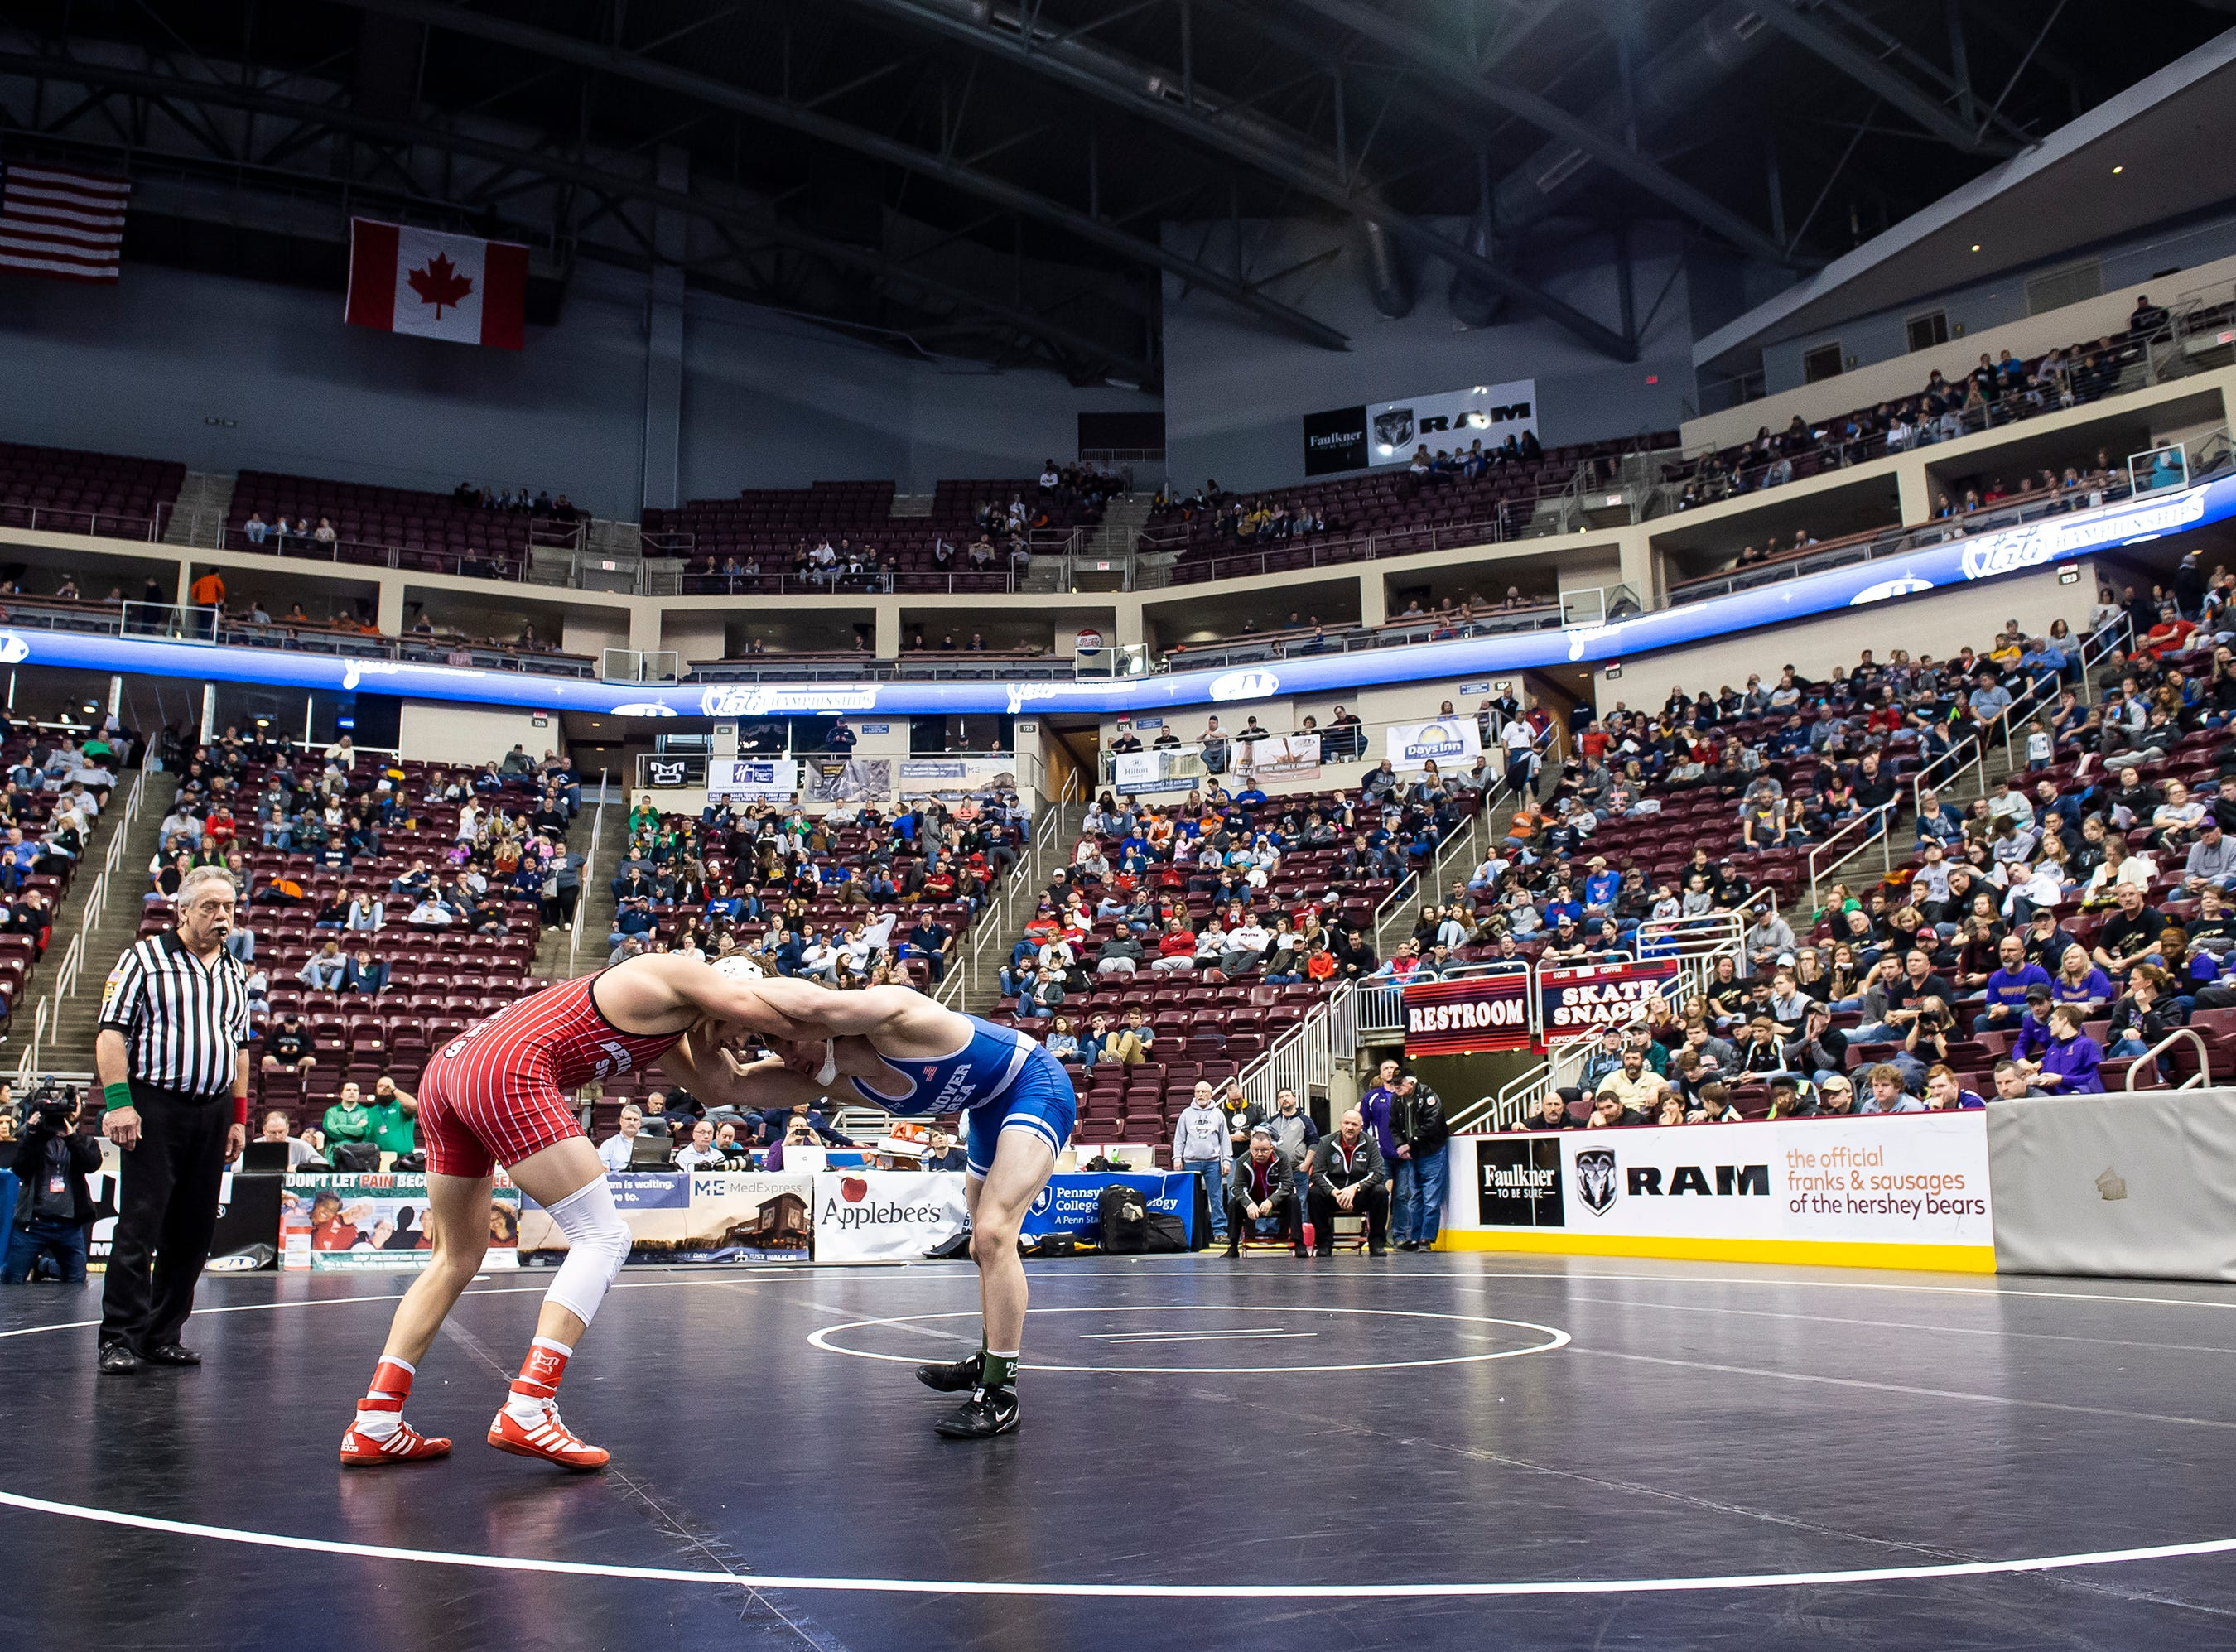 Bermudian Springs' Trenton Harder, left, wrestles Hanover Area's D.J. Erickson during the 2A 152-pound quarterfinal bout in the PIAA State Championships at the Giant Center in Hershey Friday, March 8, 2019. Harder won by a 3-2 decision.